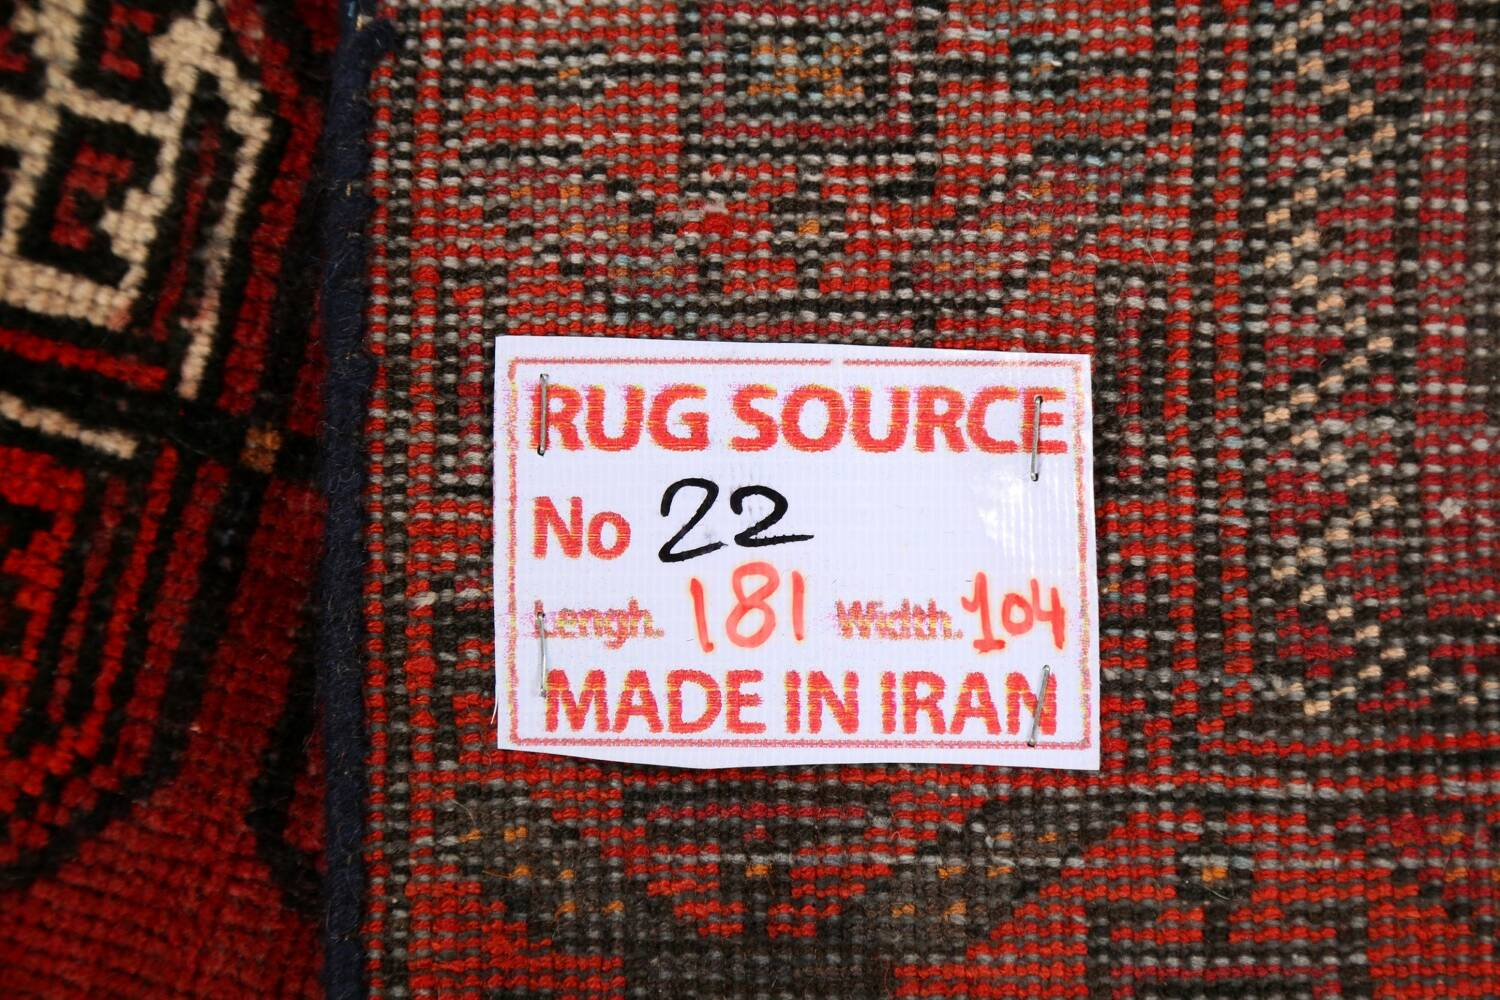 All-Over Red Geometric Balouch Persian Area Rug 3x6 image 22